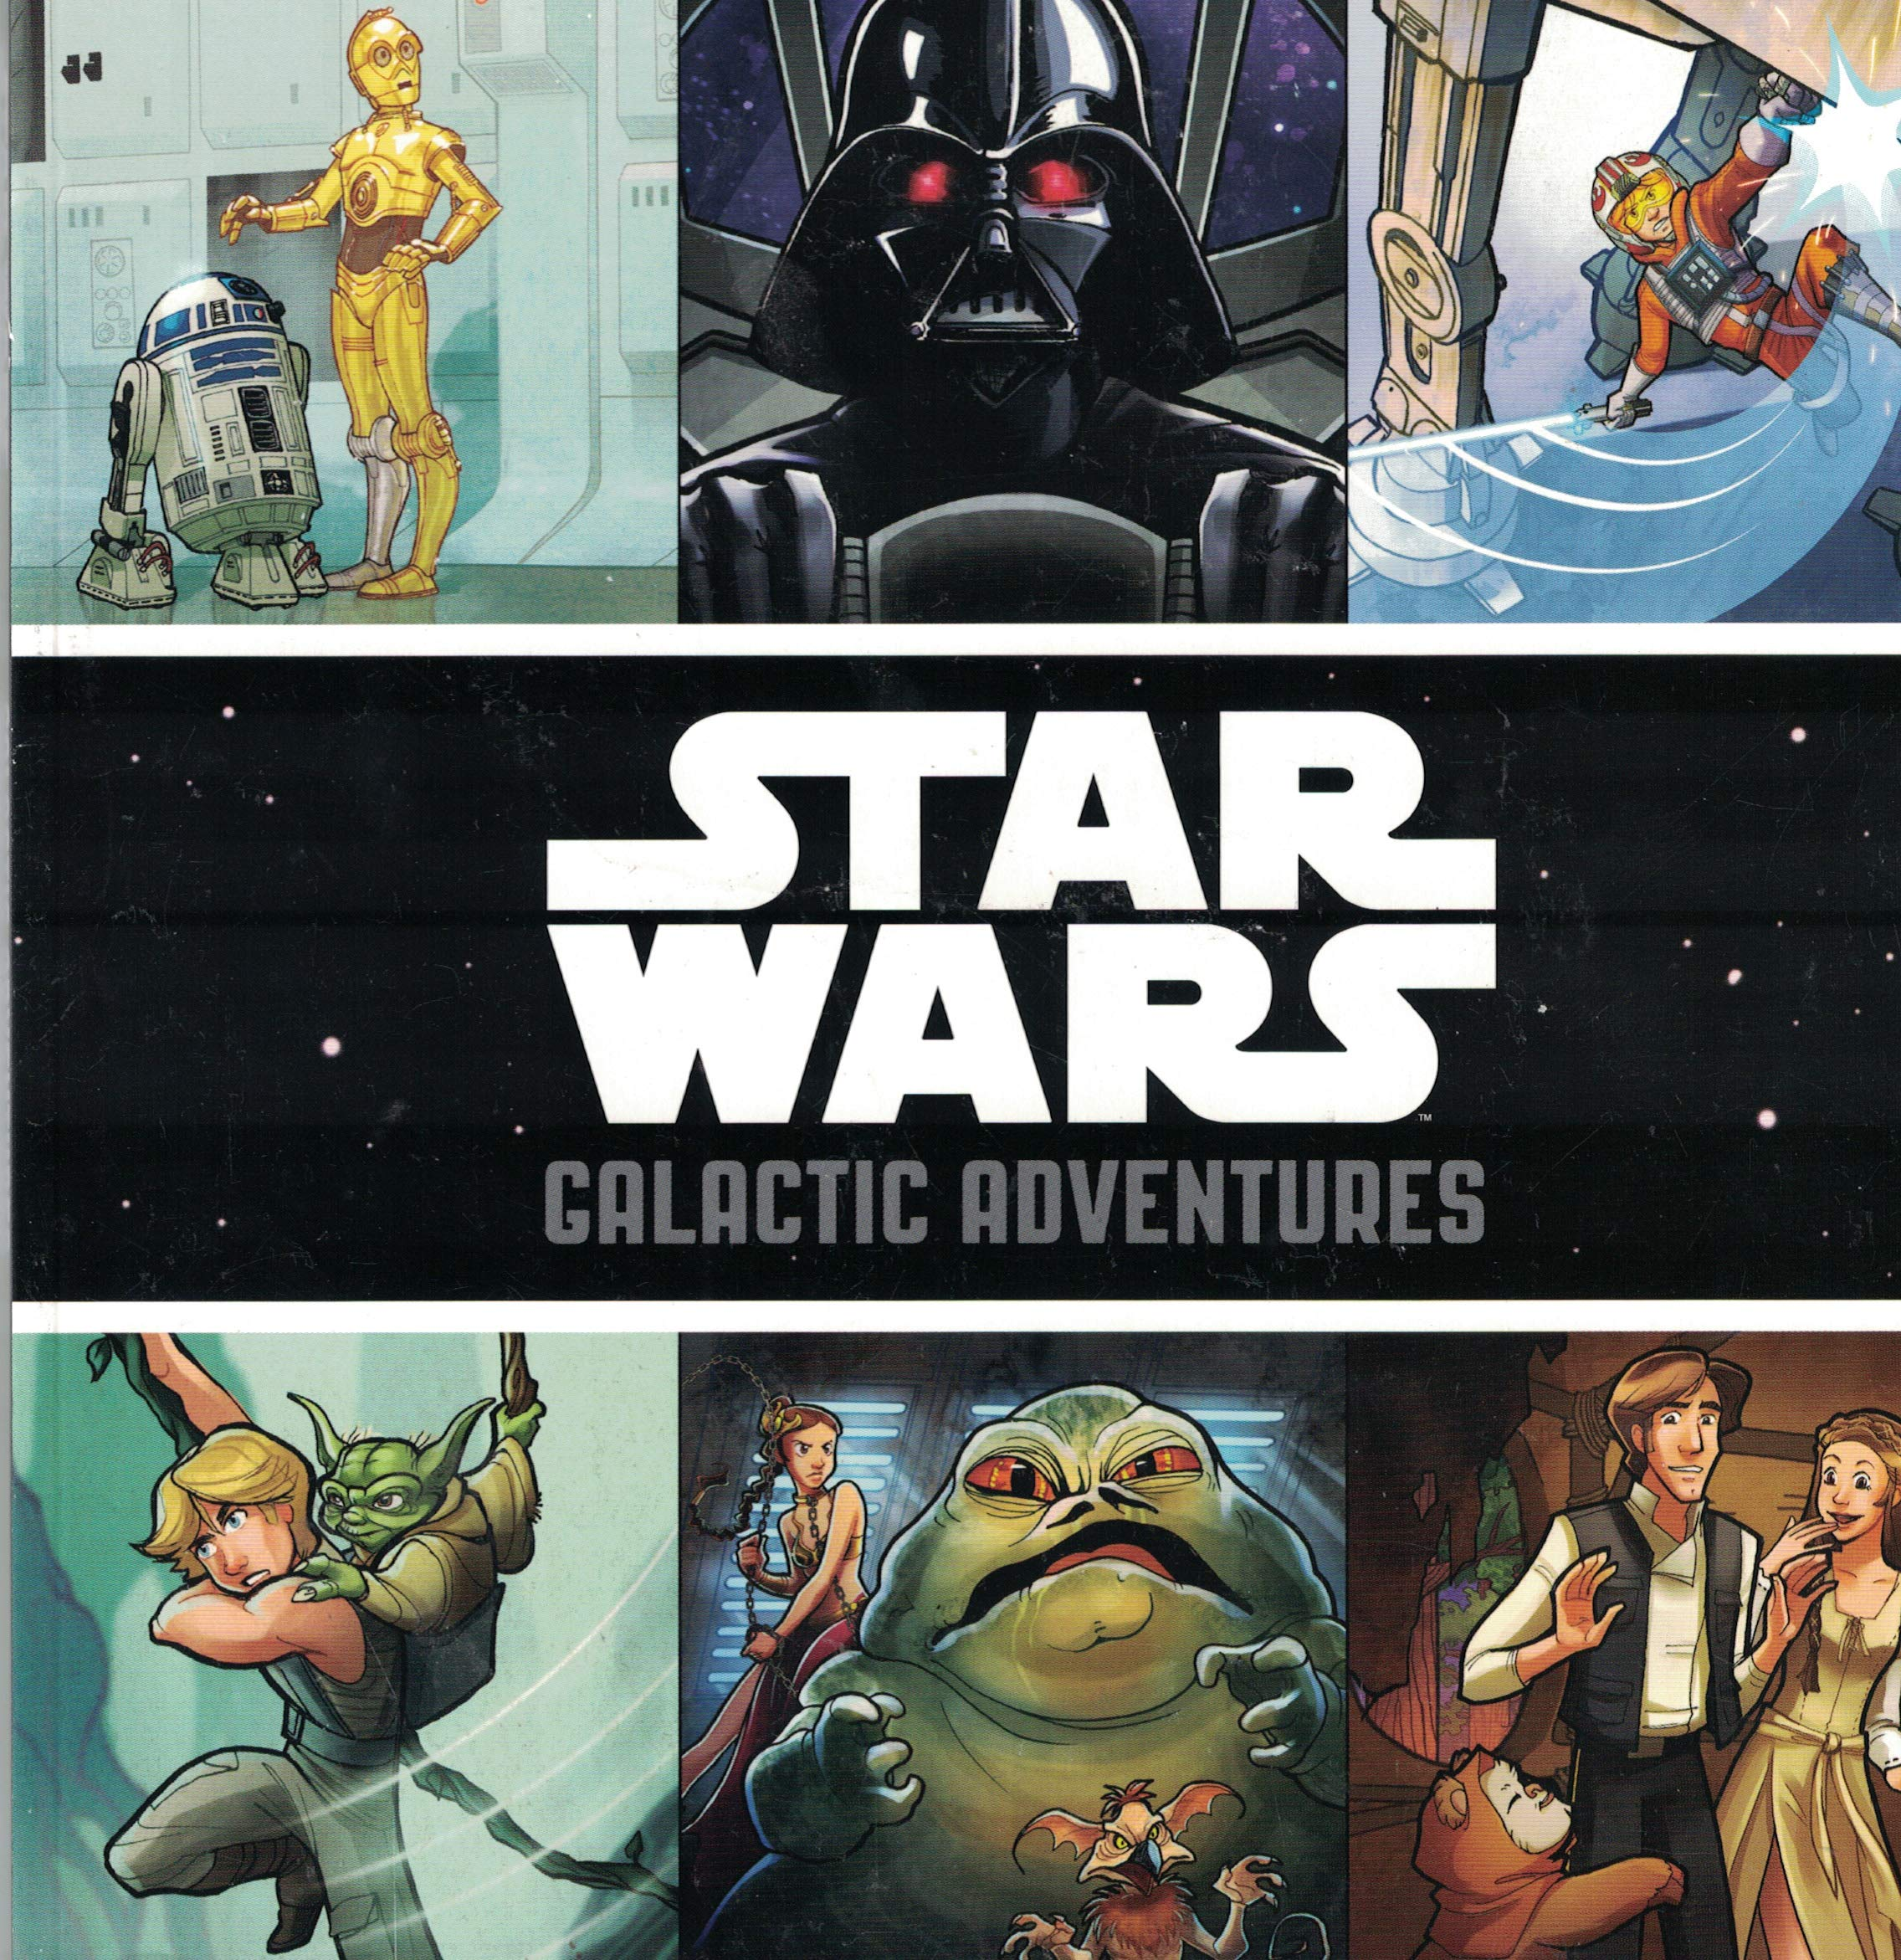 Star Wars Galactic Adventures 2016.jpg